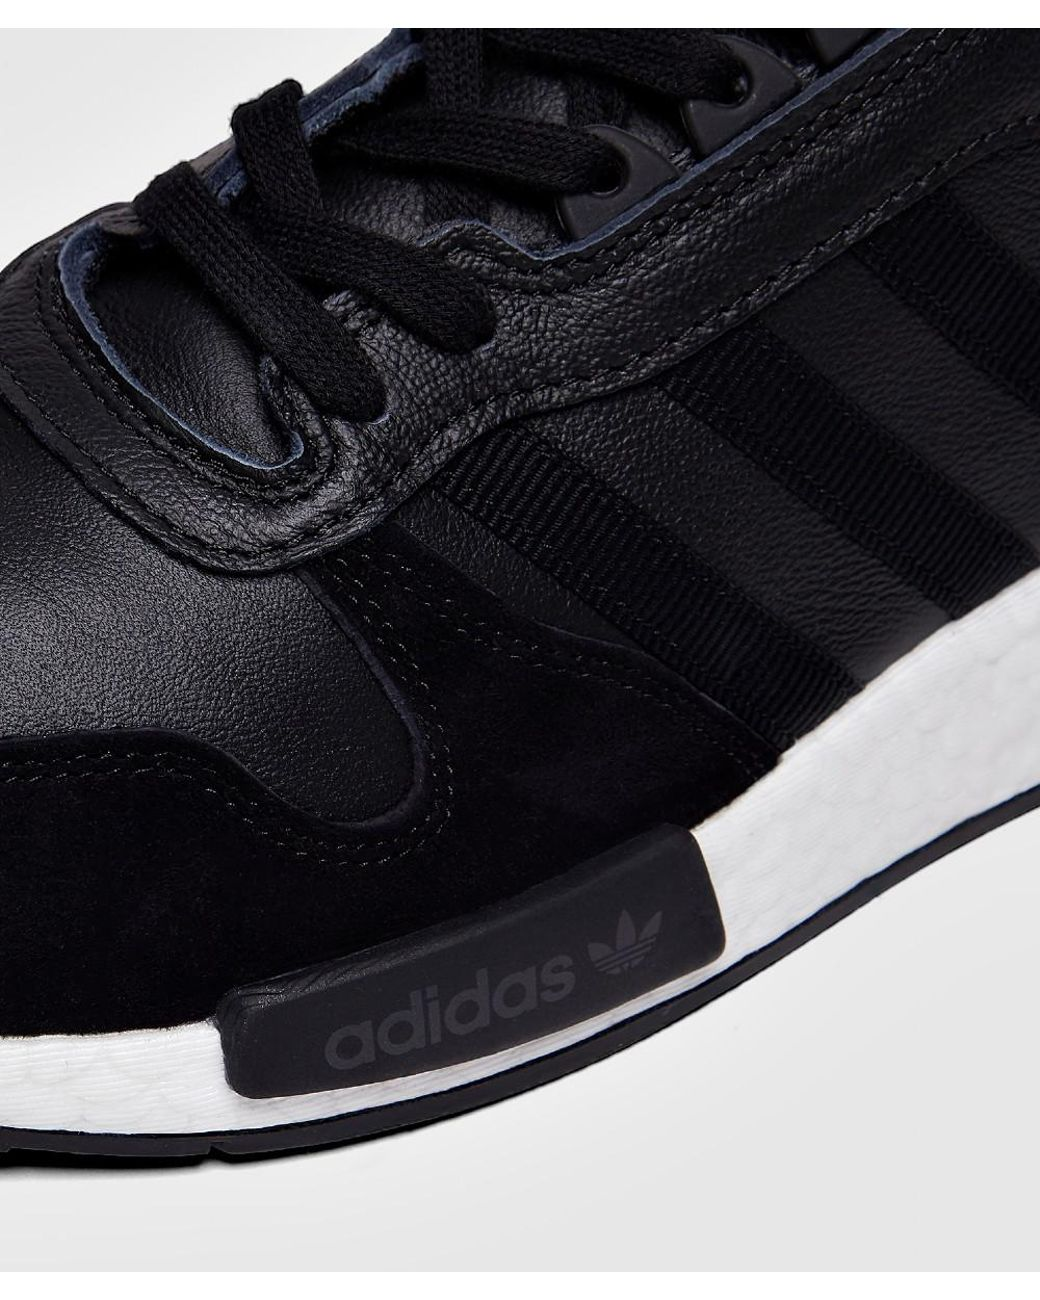 982794126e8e0 Lyst - adidas Risingstar X R1 in Black for Men